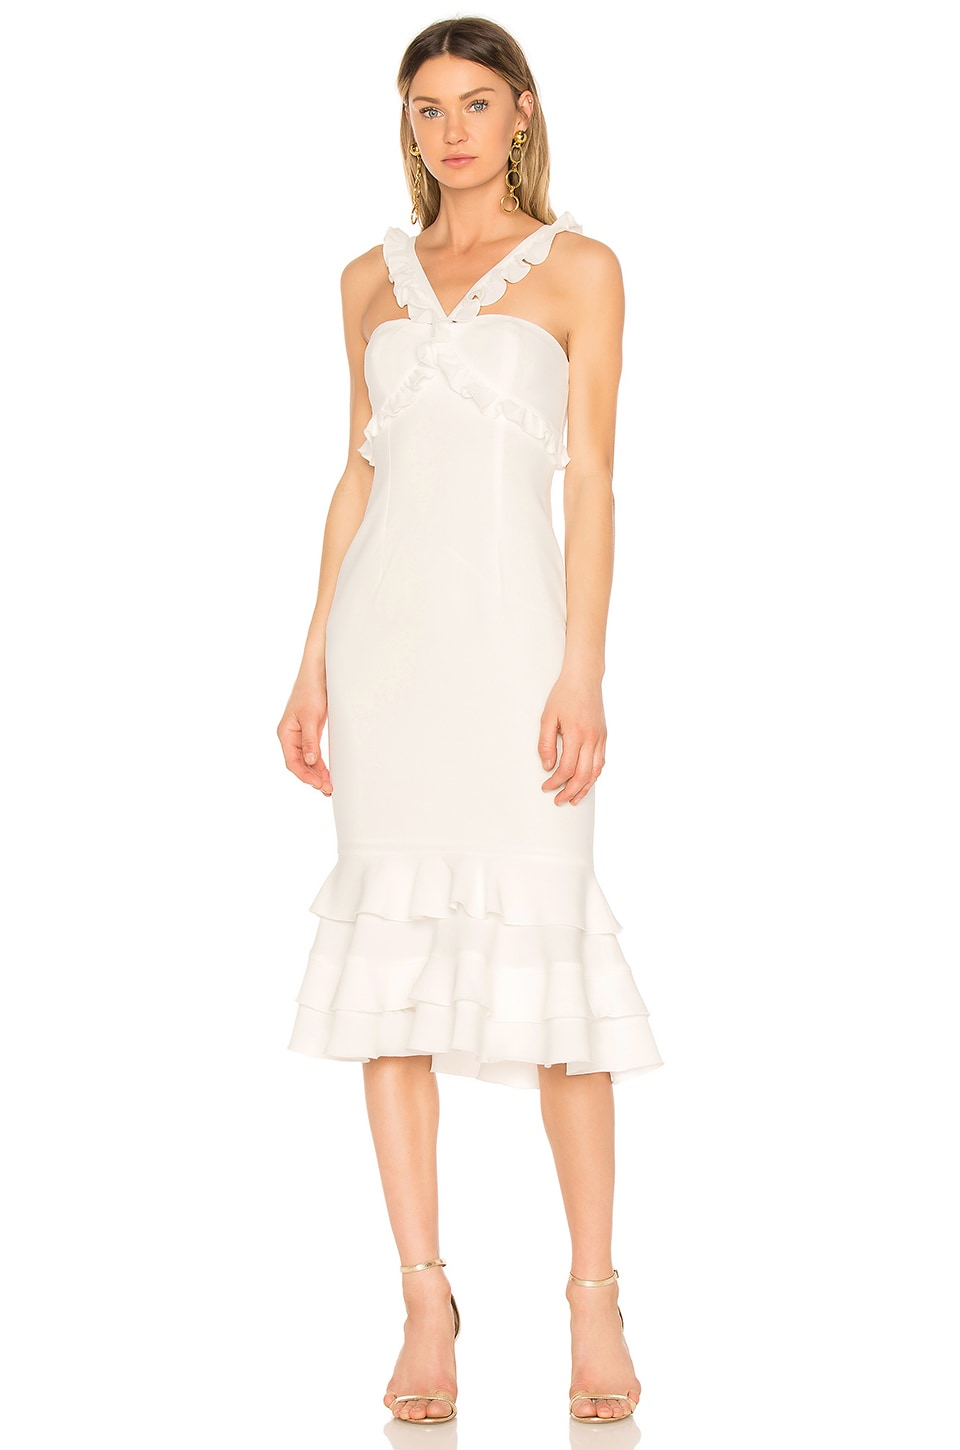 Cinq A Sept Frill Cross Strap Dress - White